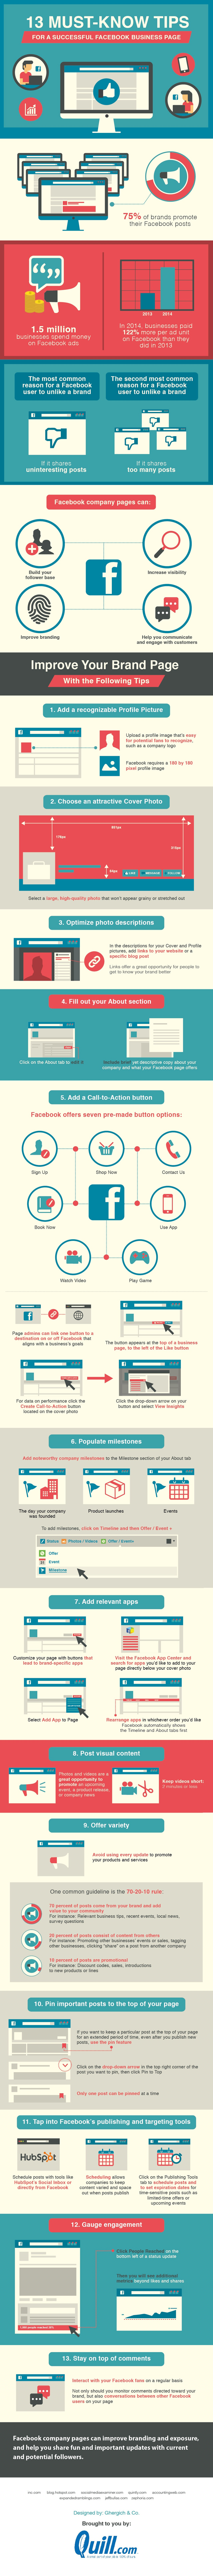 facebook-business-page-tips-infographic.jpg